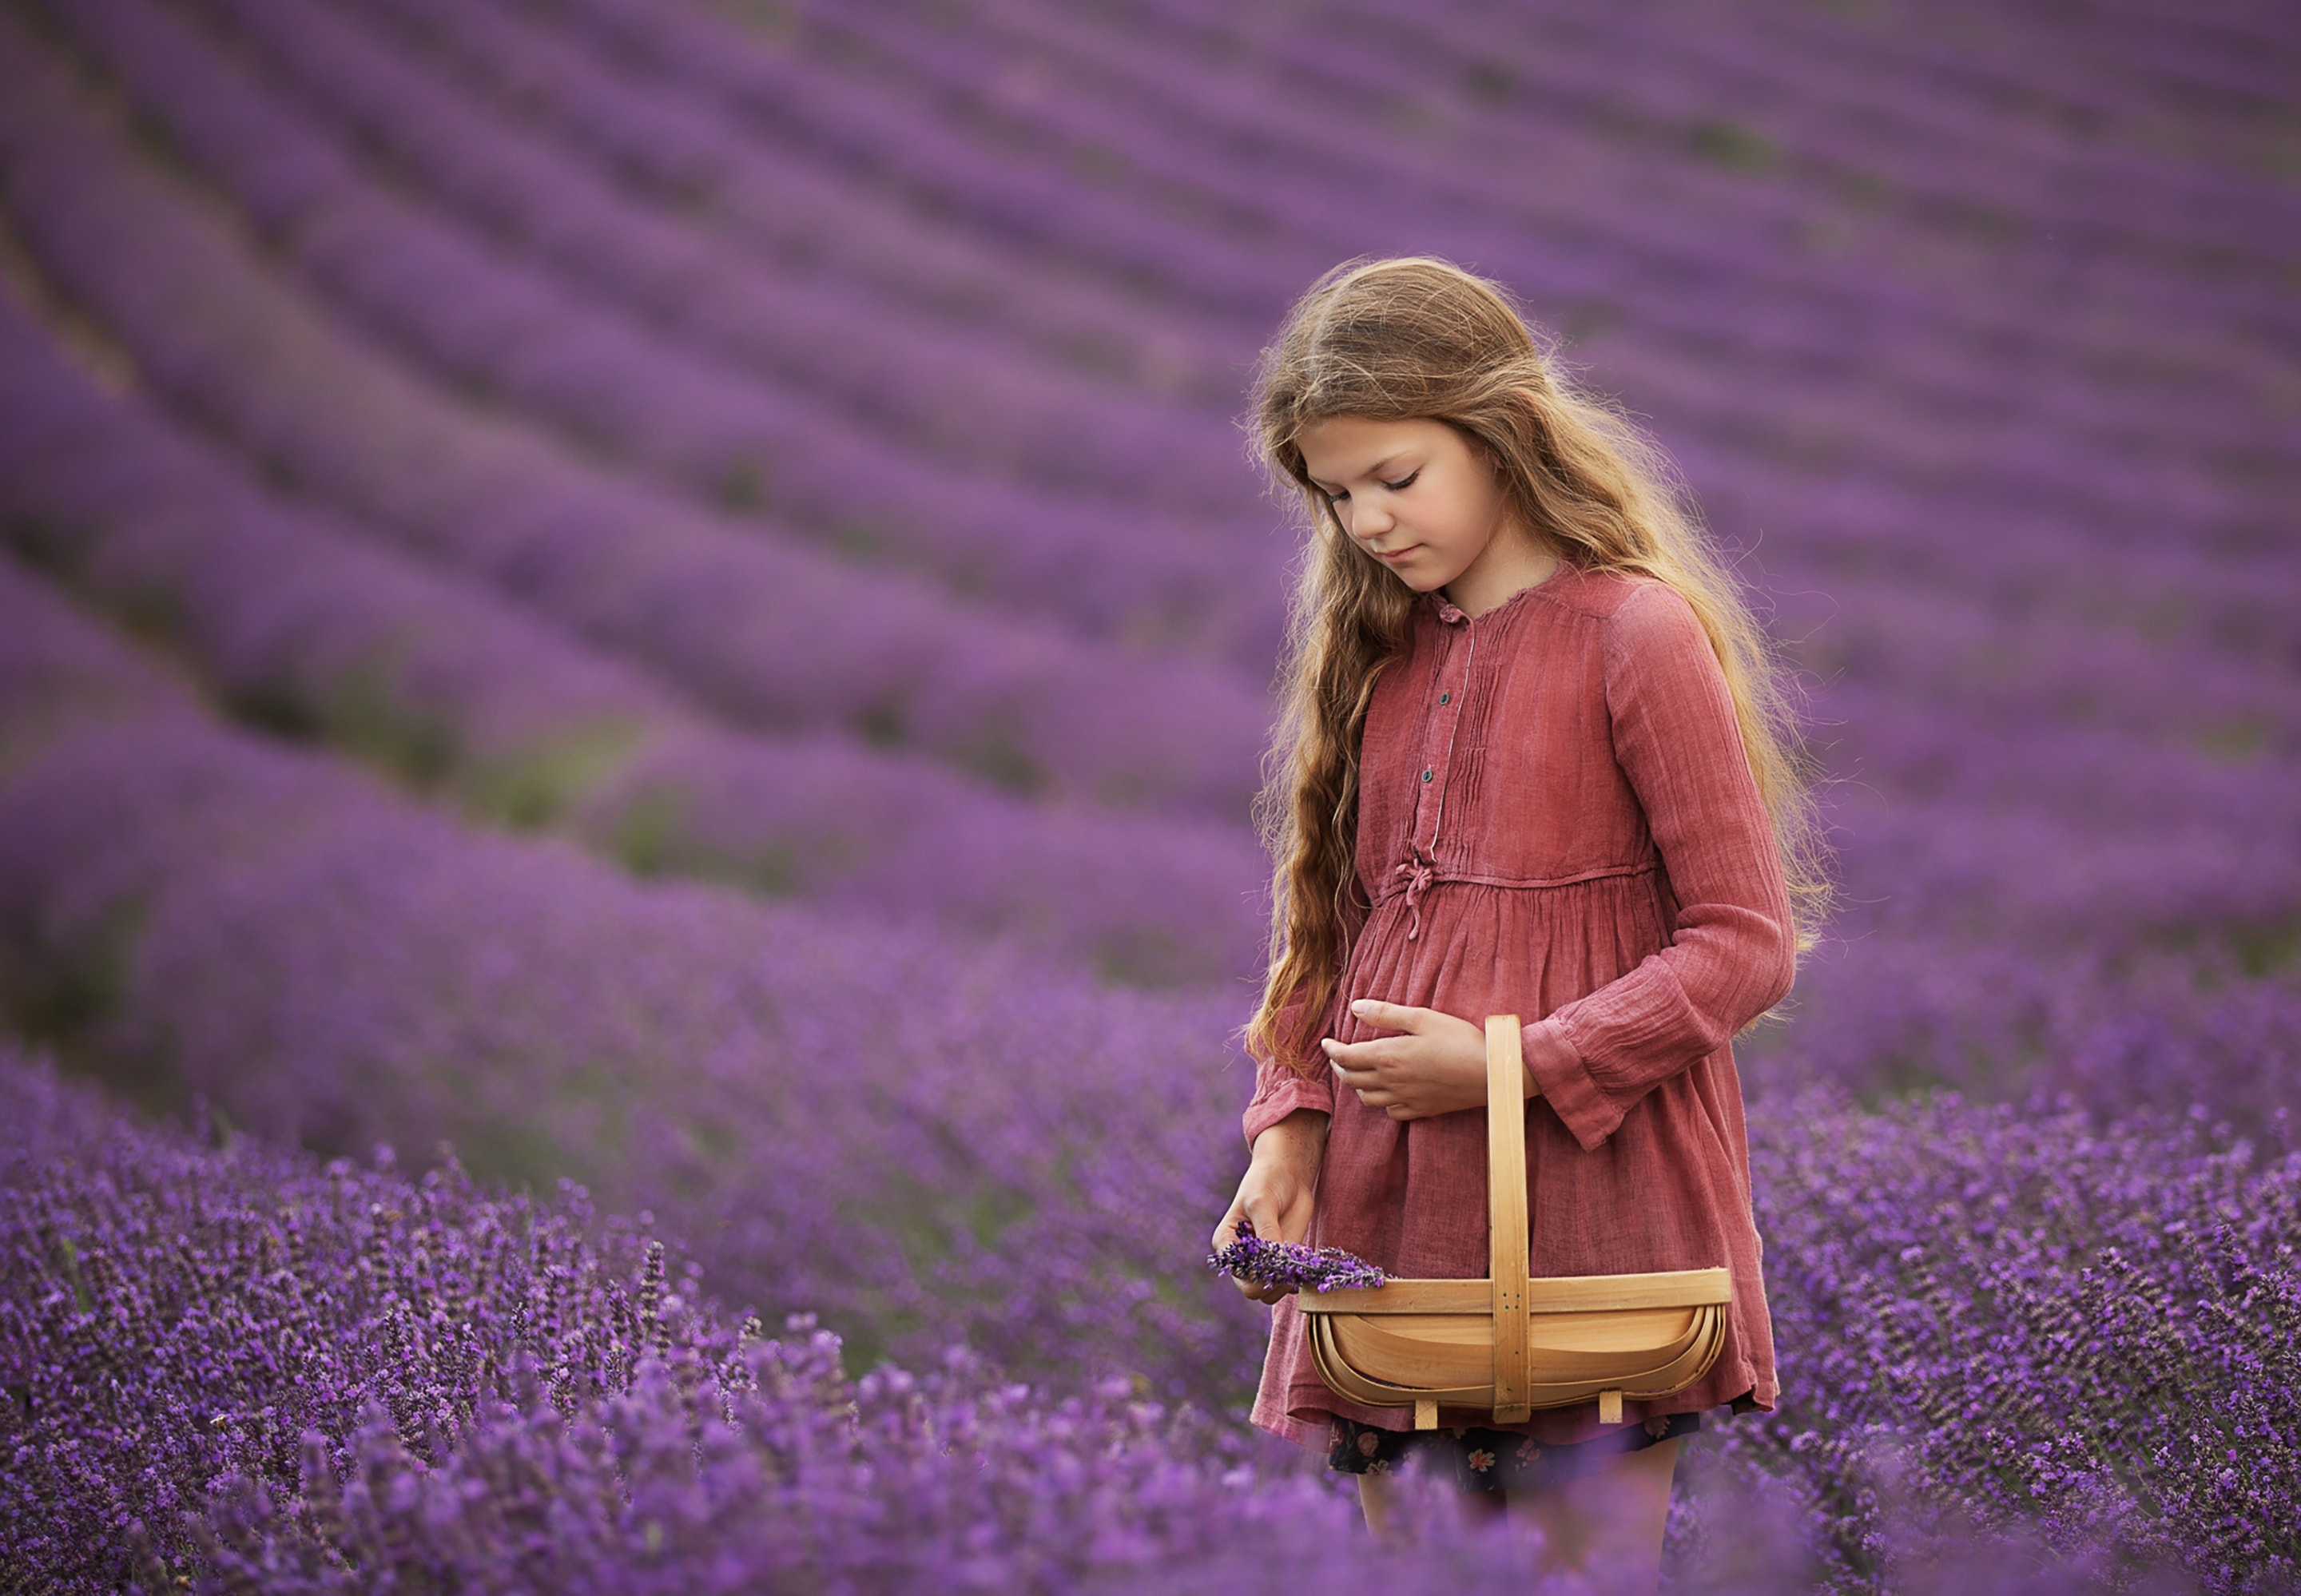 long haired girl picking lavender in a field of Lavender